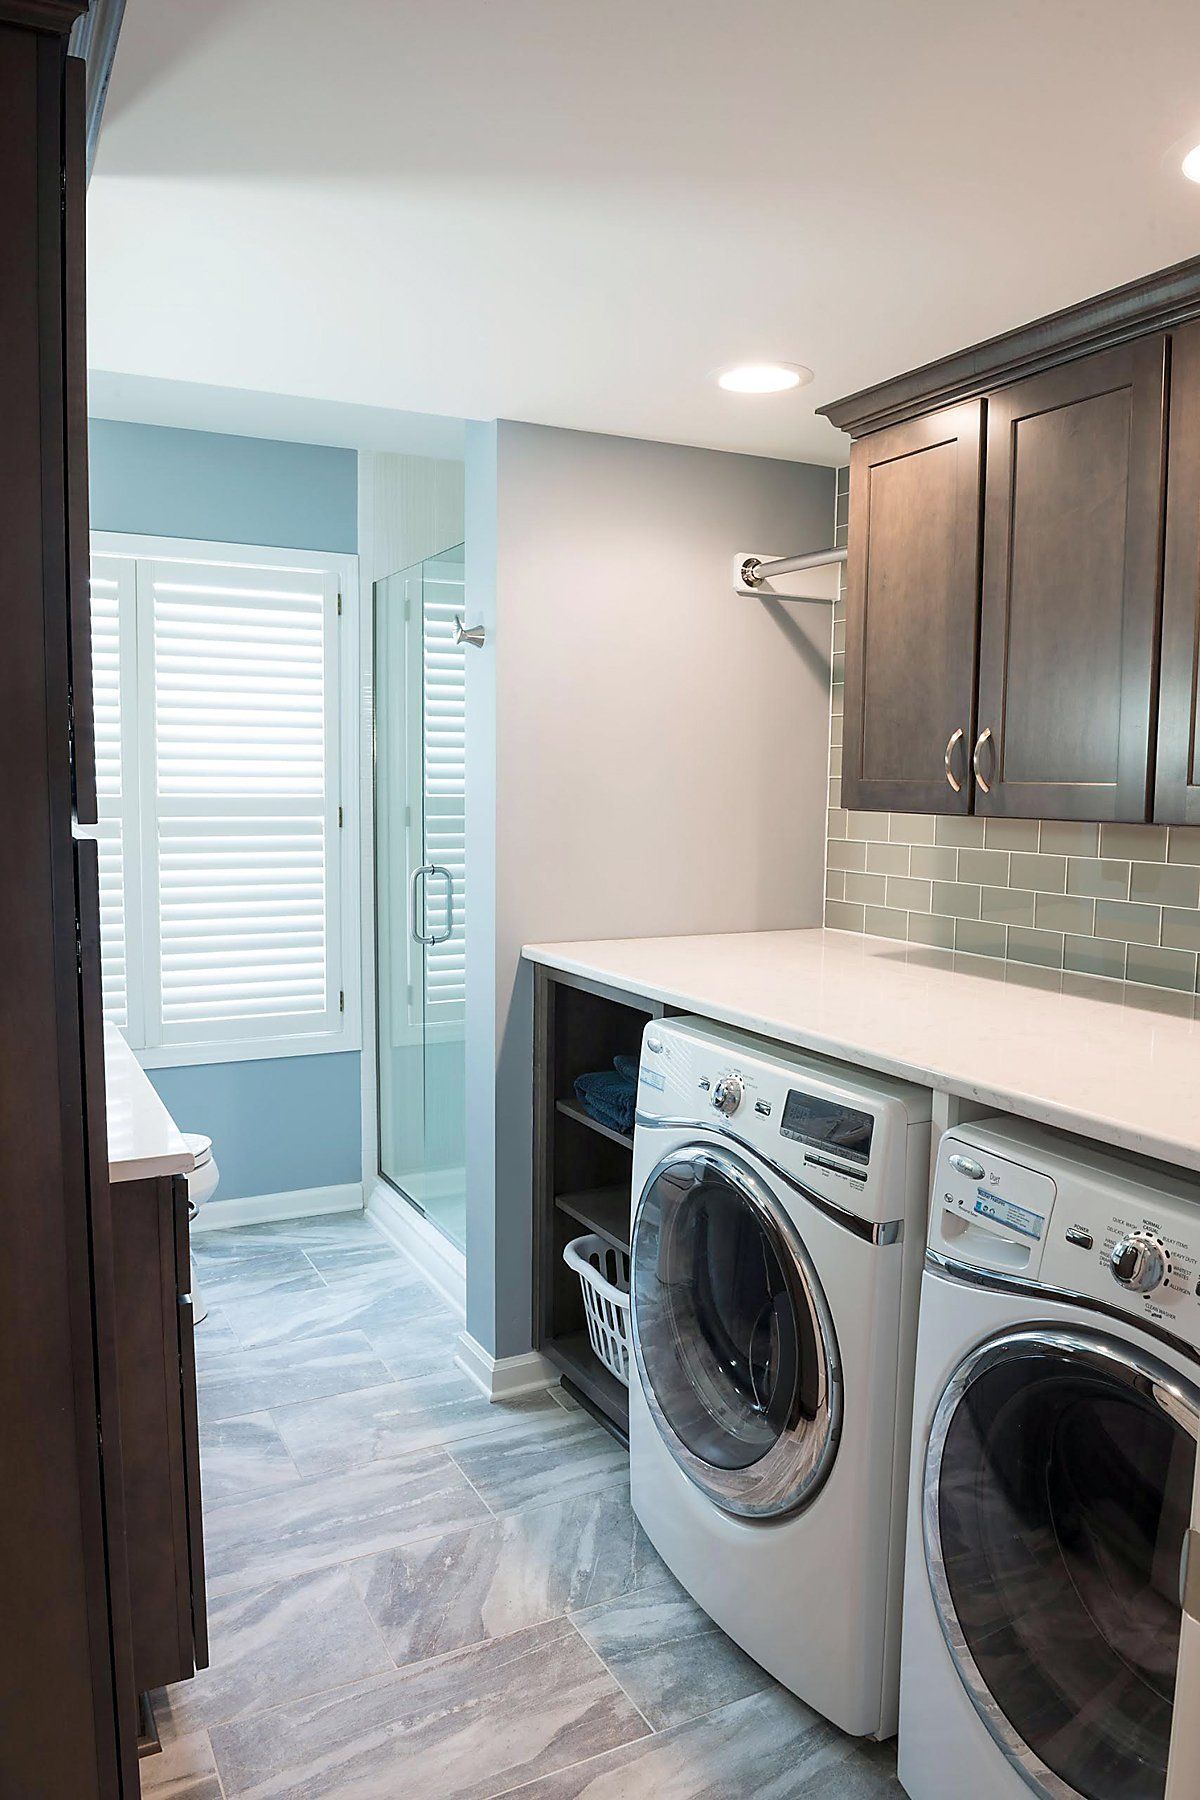 Bathroom Floor Plans With Laundry 23 Small Bathroom Laundry Room Combo Interior And Layout D Laundry Room Bathroom Laundry In Bathroom Laundry Bathroom Combo